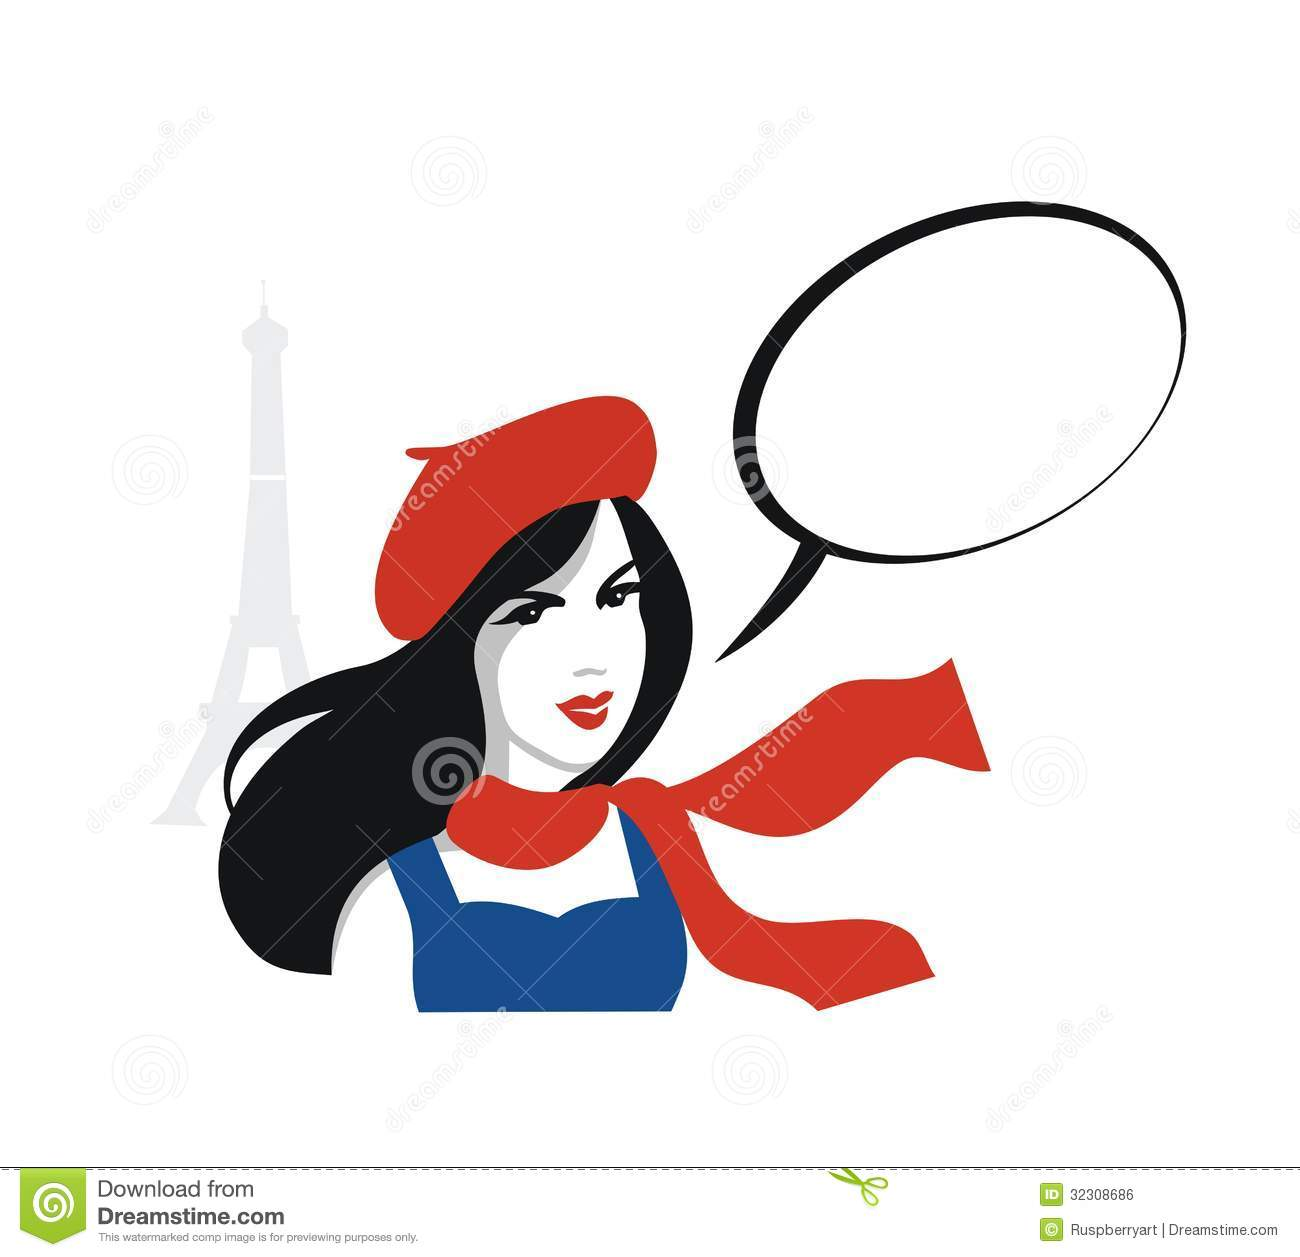 French woman clipart the image kid has it for Illustration minimaliste